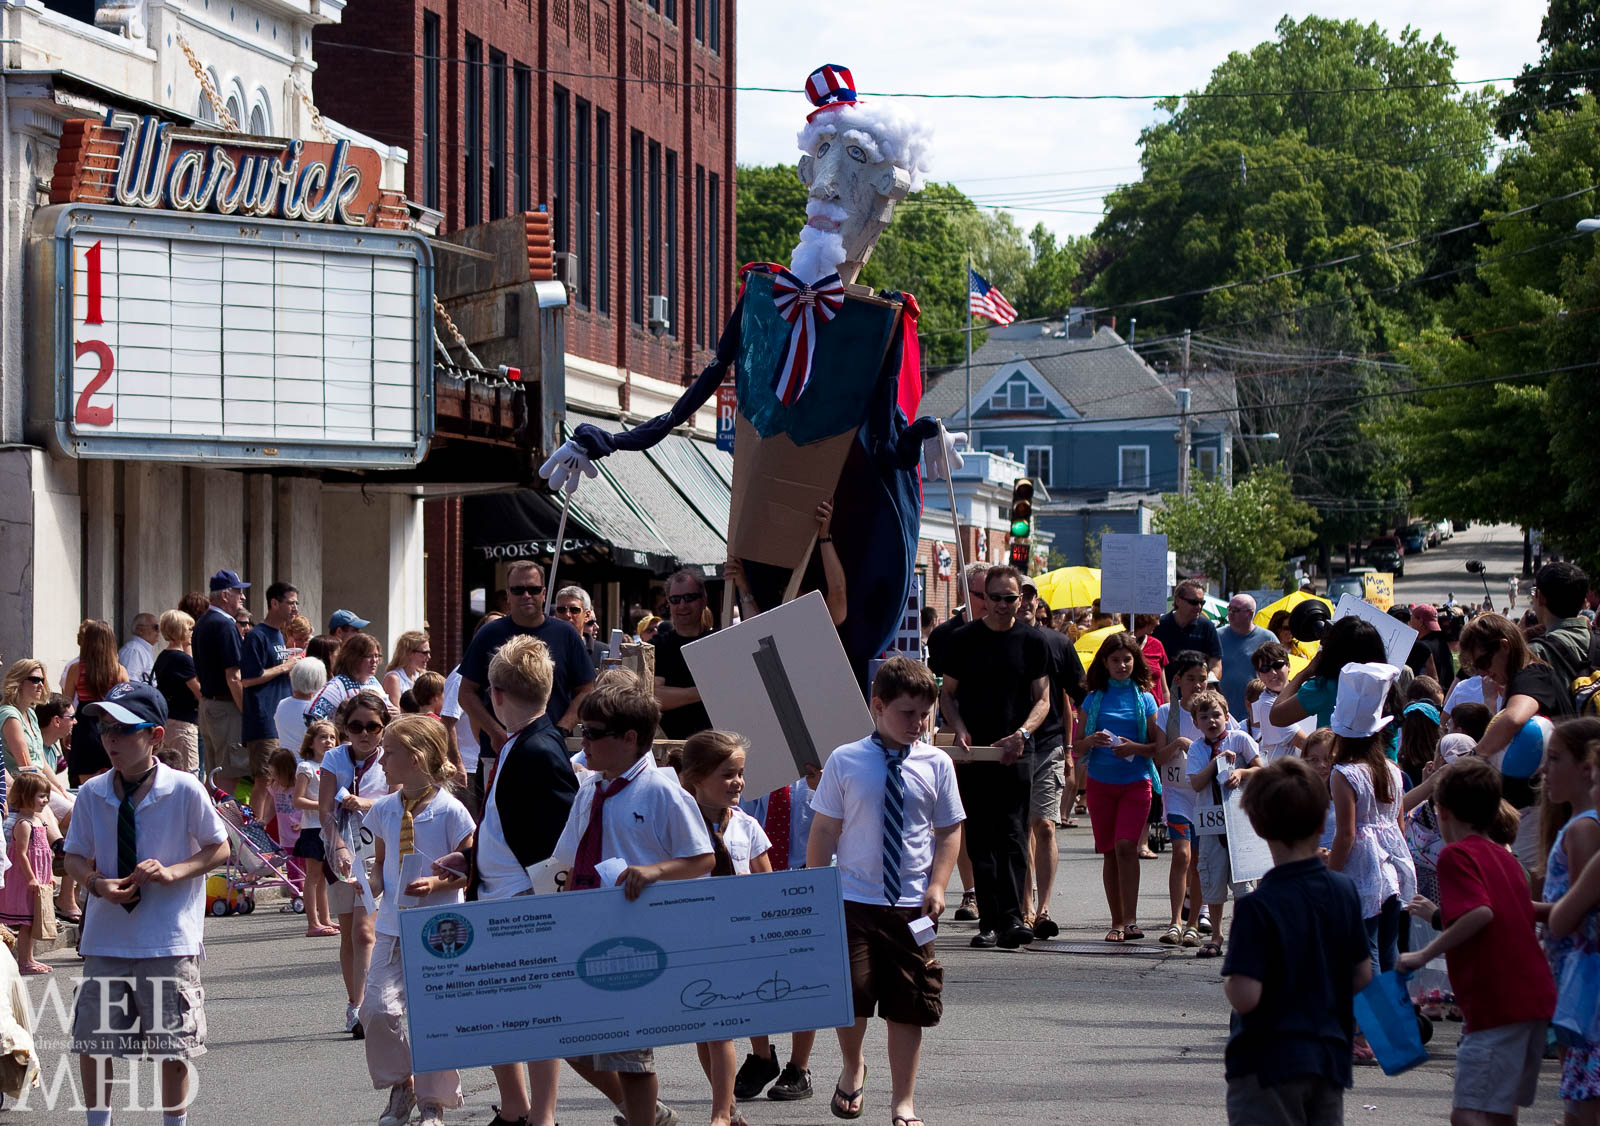 Kids take part in the Parade of Horribles along Pleasant Street in Marblehead